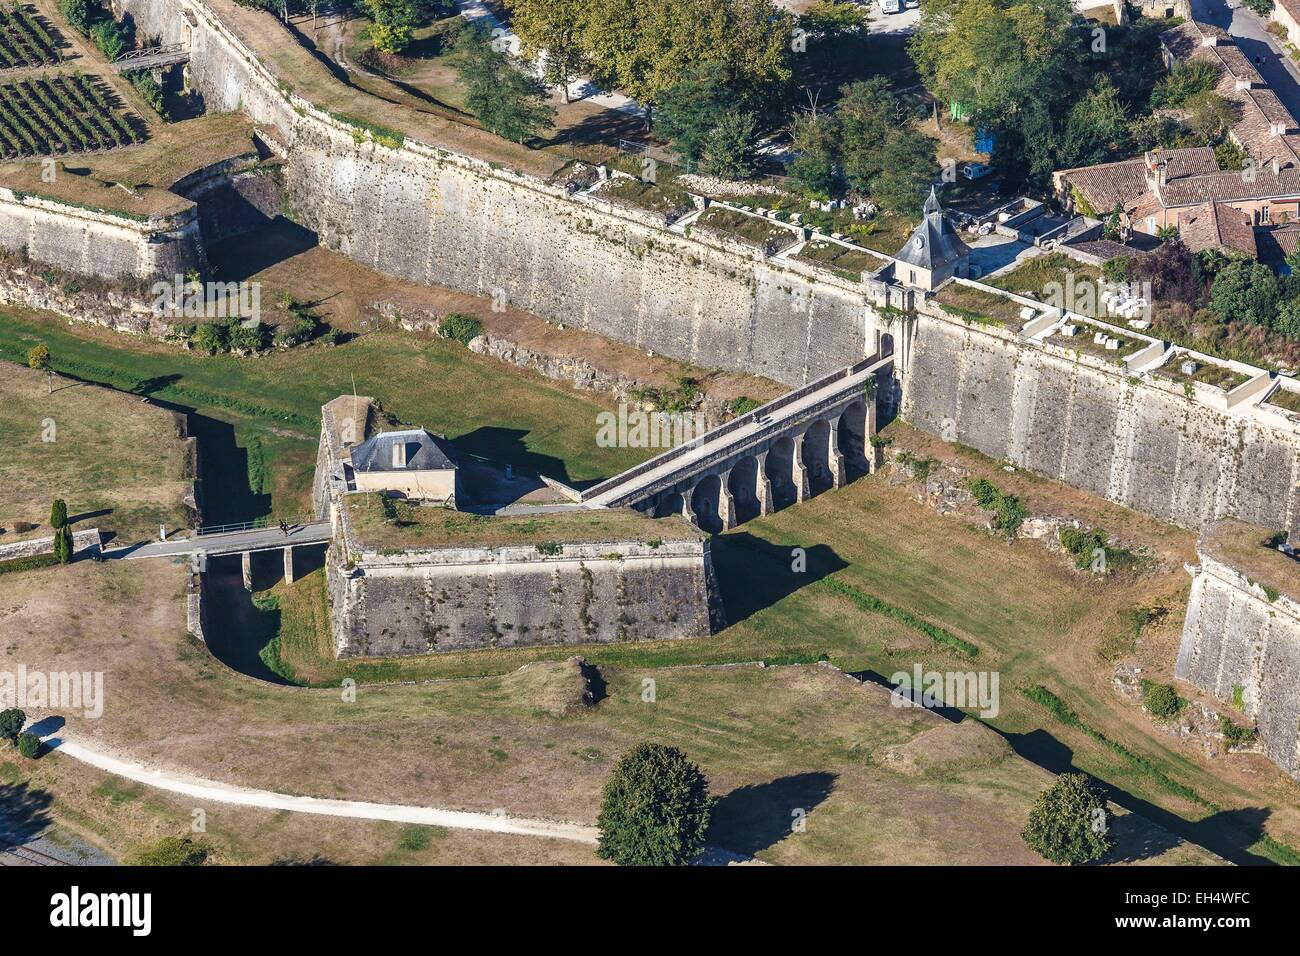 France, Gironde, Blaye, The citadel, Fortifications of Vauban, listed as World Heritage by UNESCO, the Porte Dauphine - Stock Image